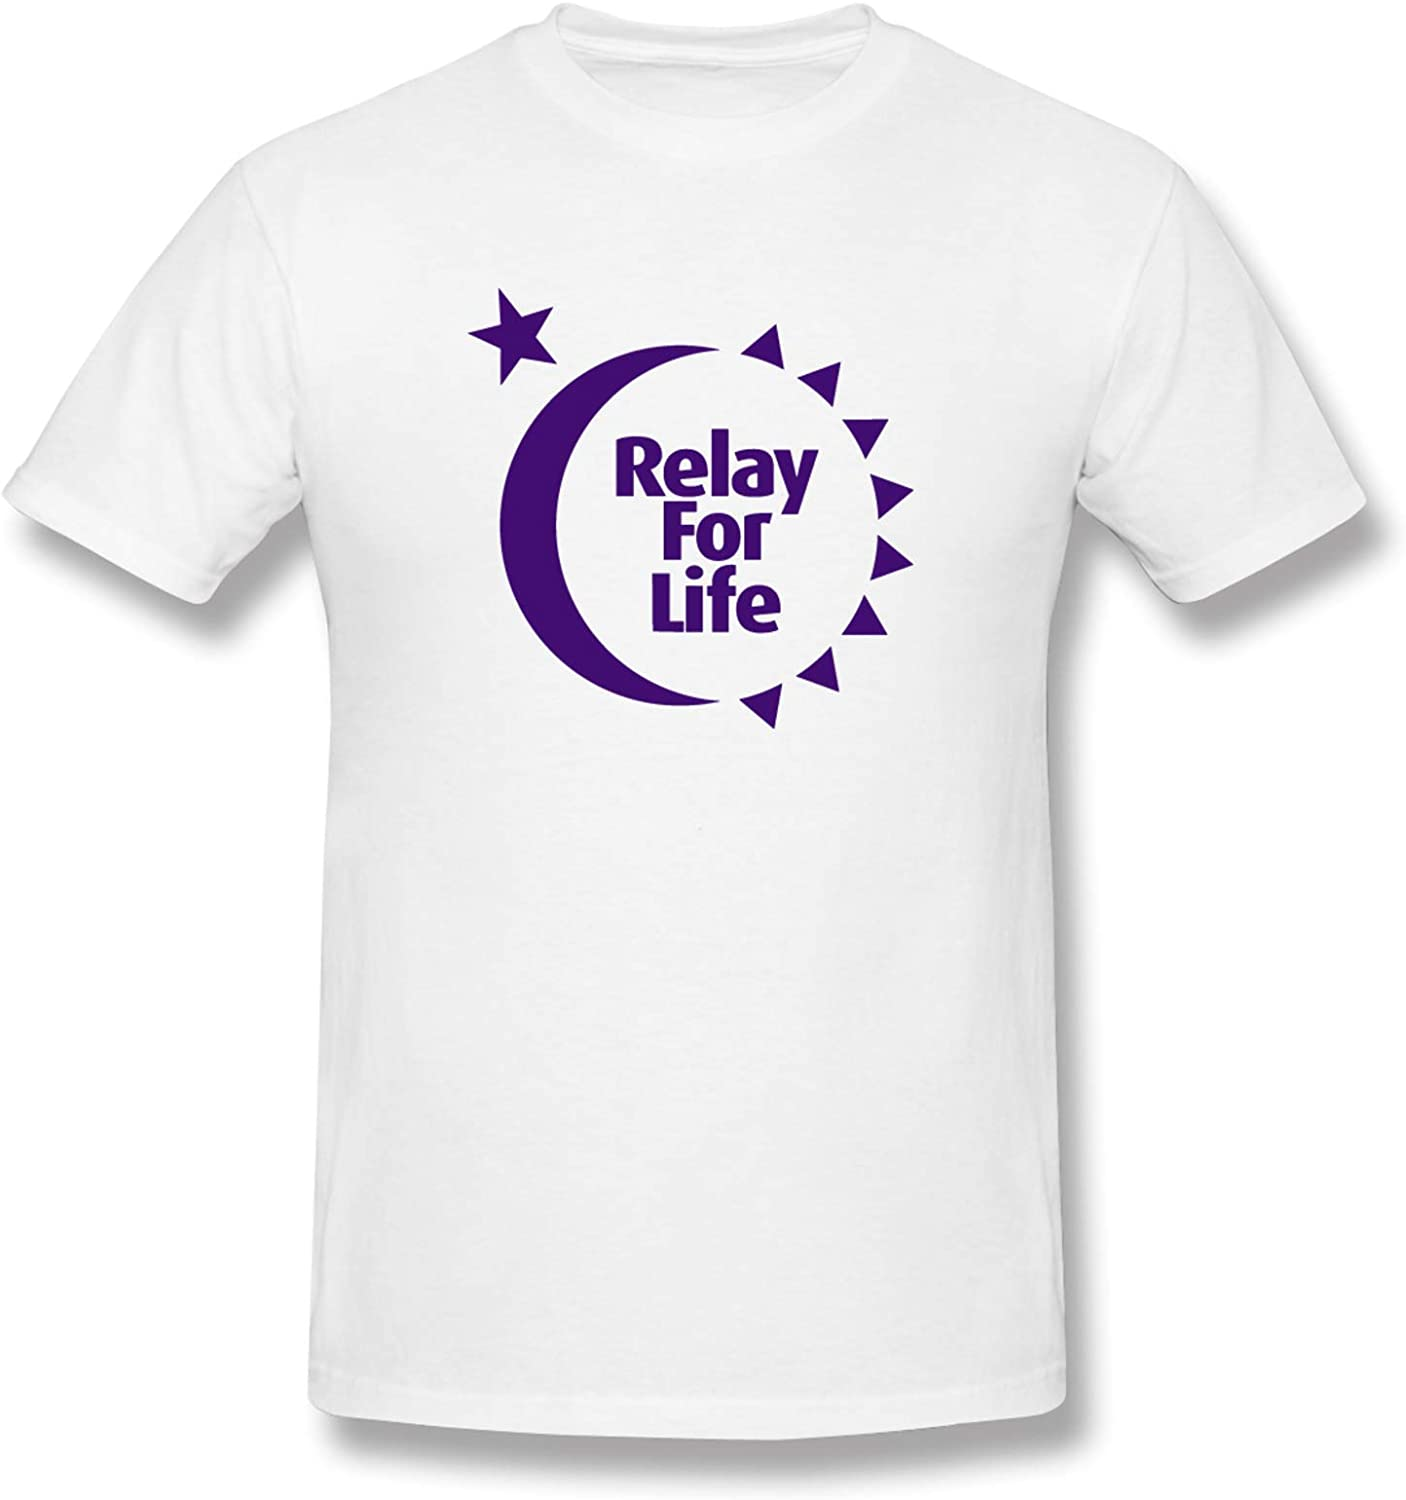 Relay for Life Men's T-Shirts Short-Sleeve Crew Neck T Classic Henley Shirts Casual Shirt